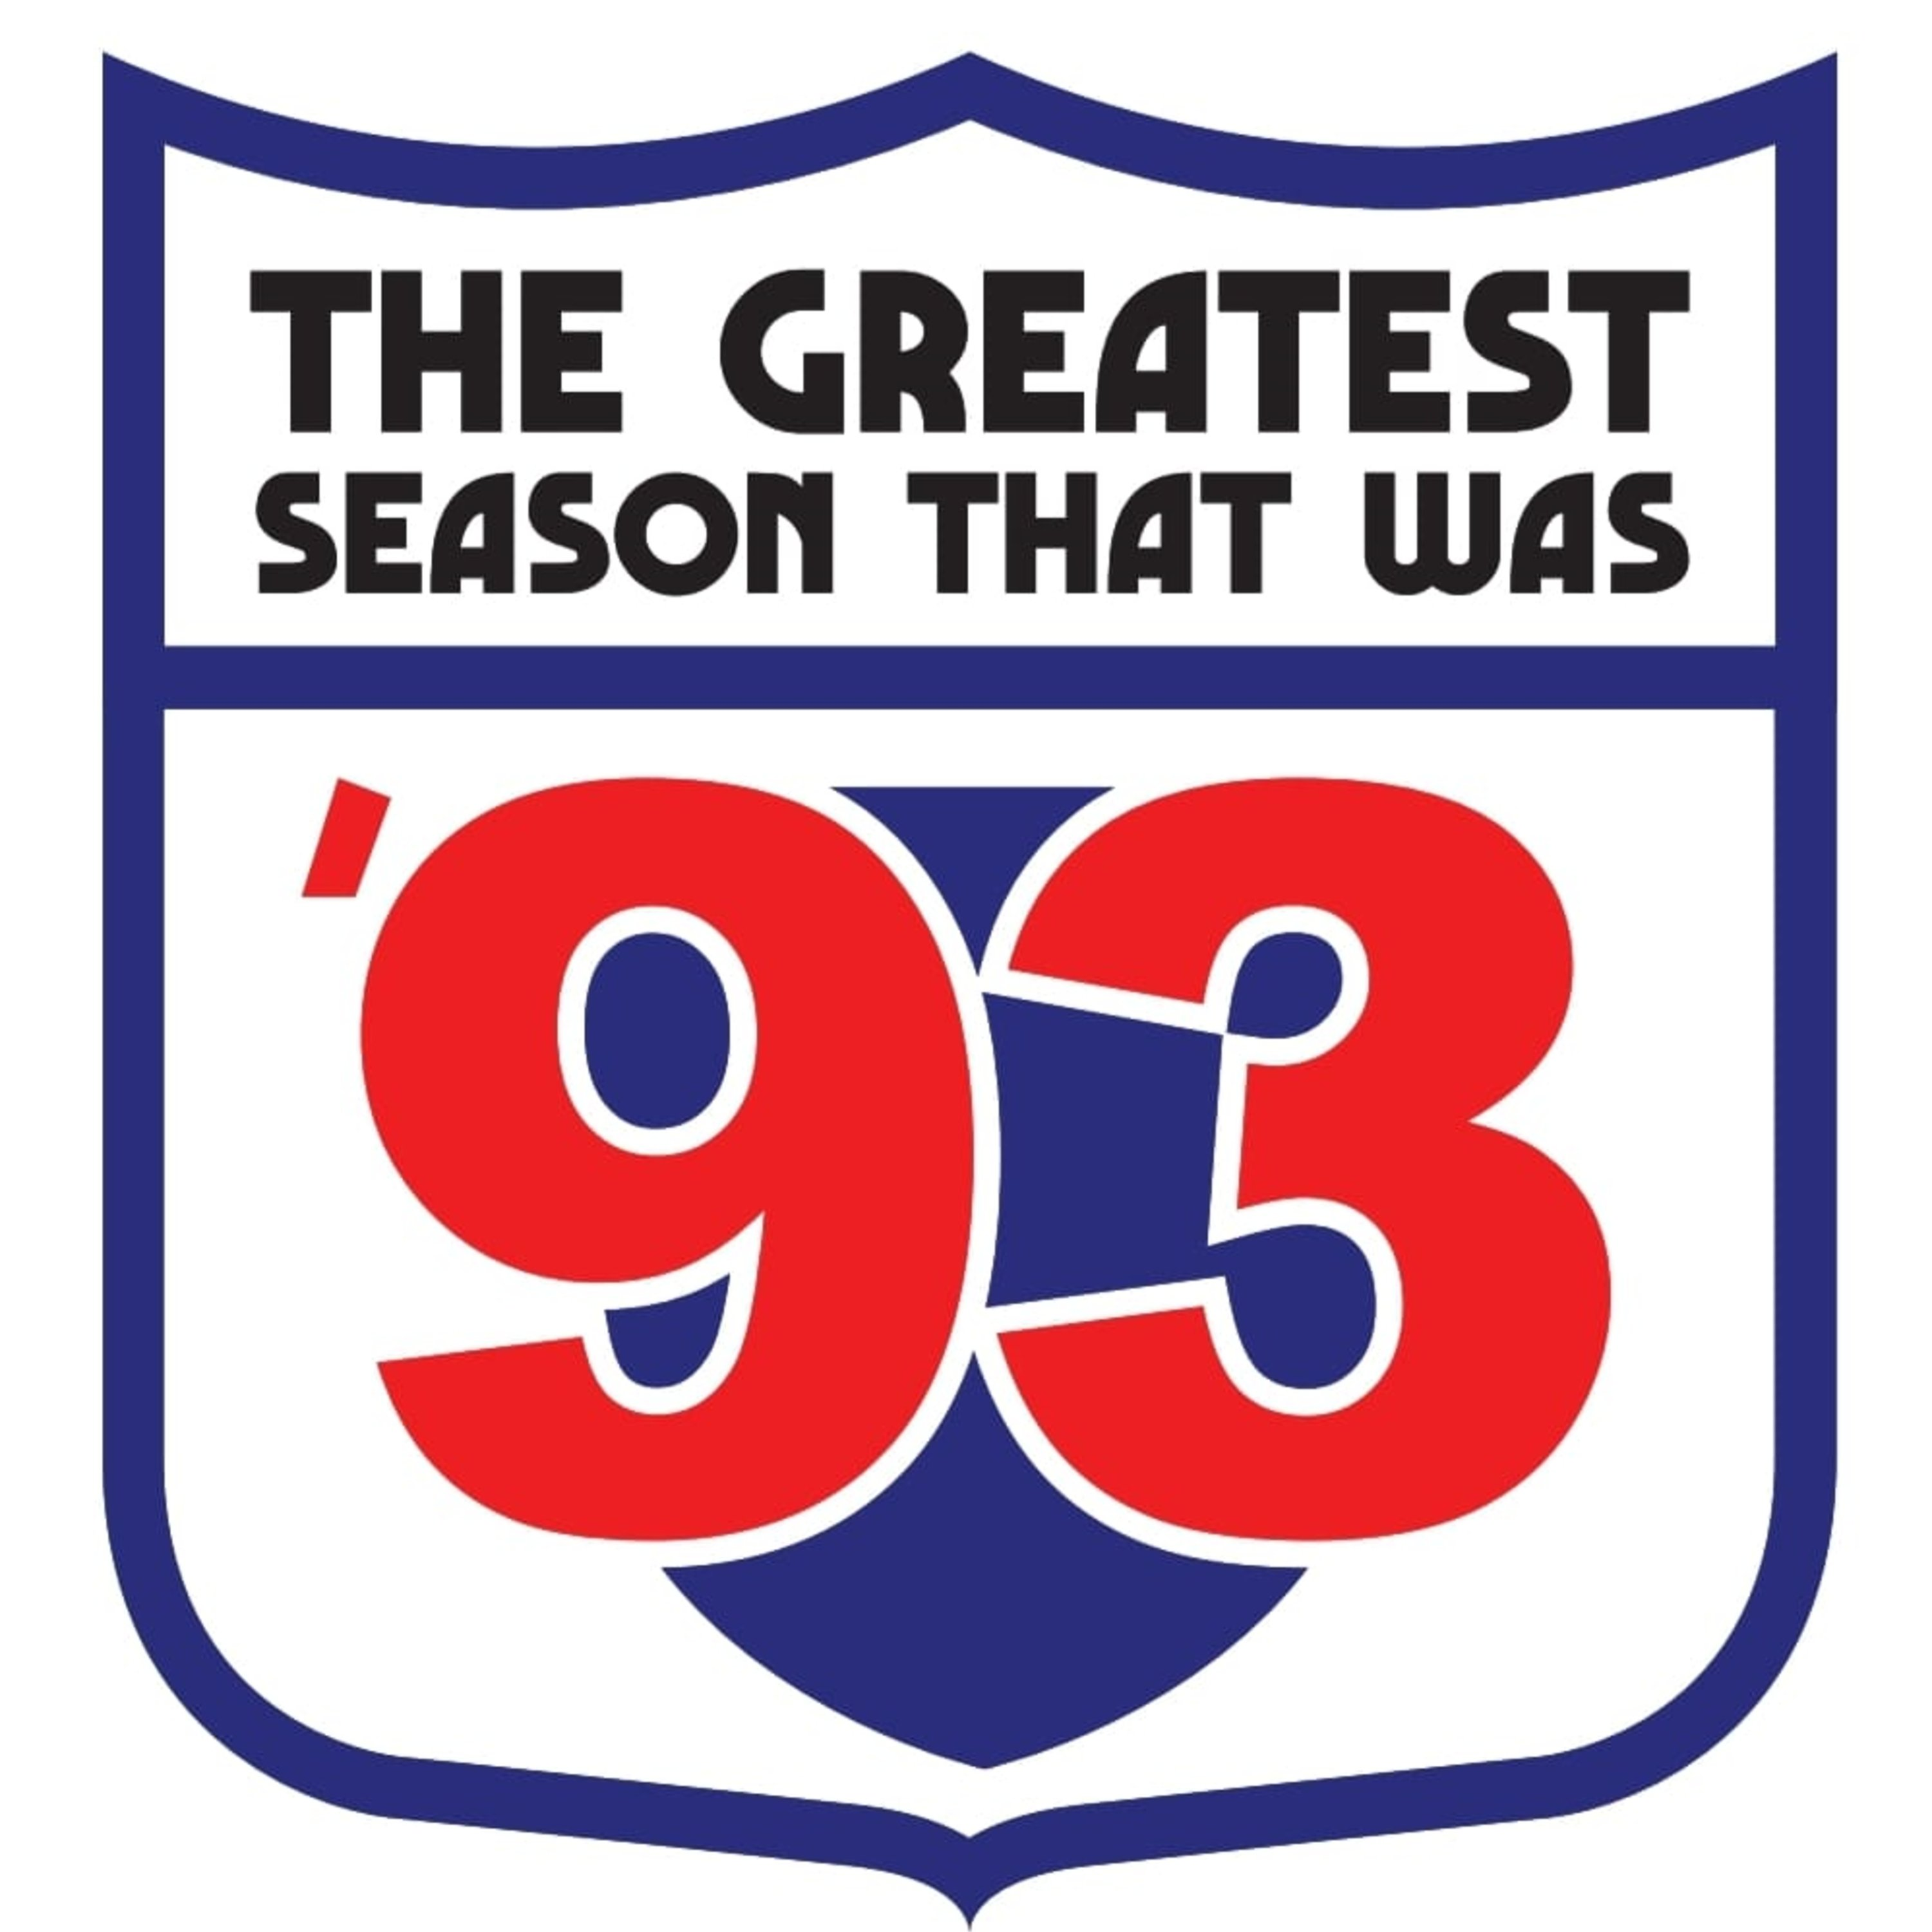 Episode 1 - The Greatest Season That Was: 1993 – The Greatest Season